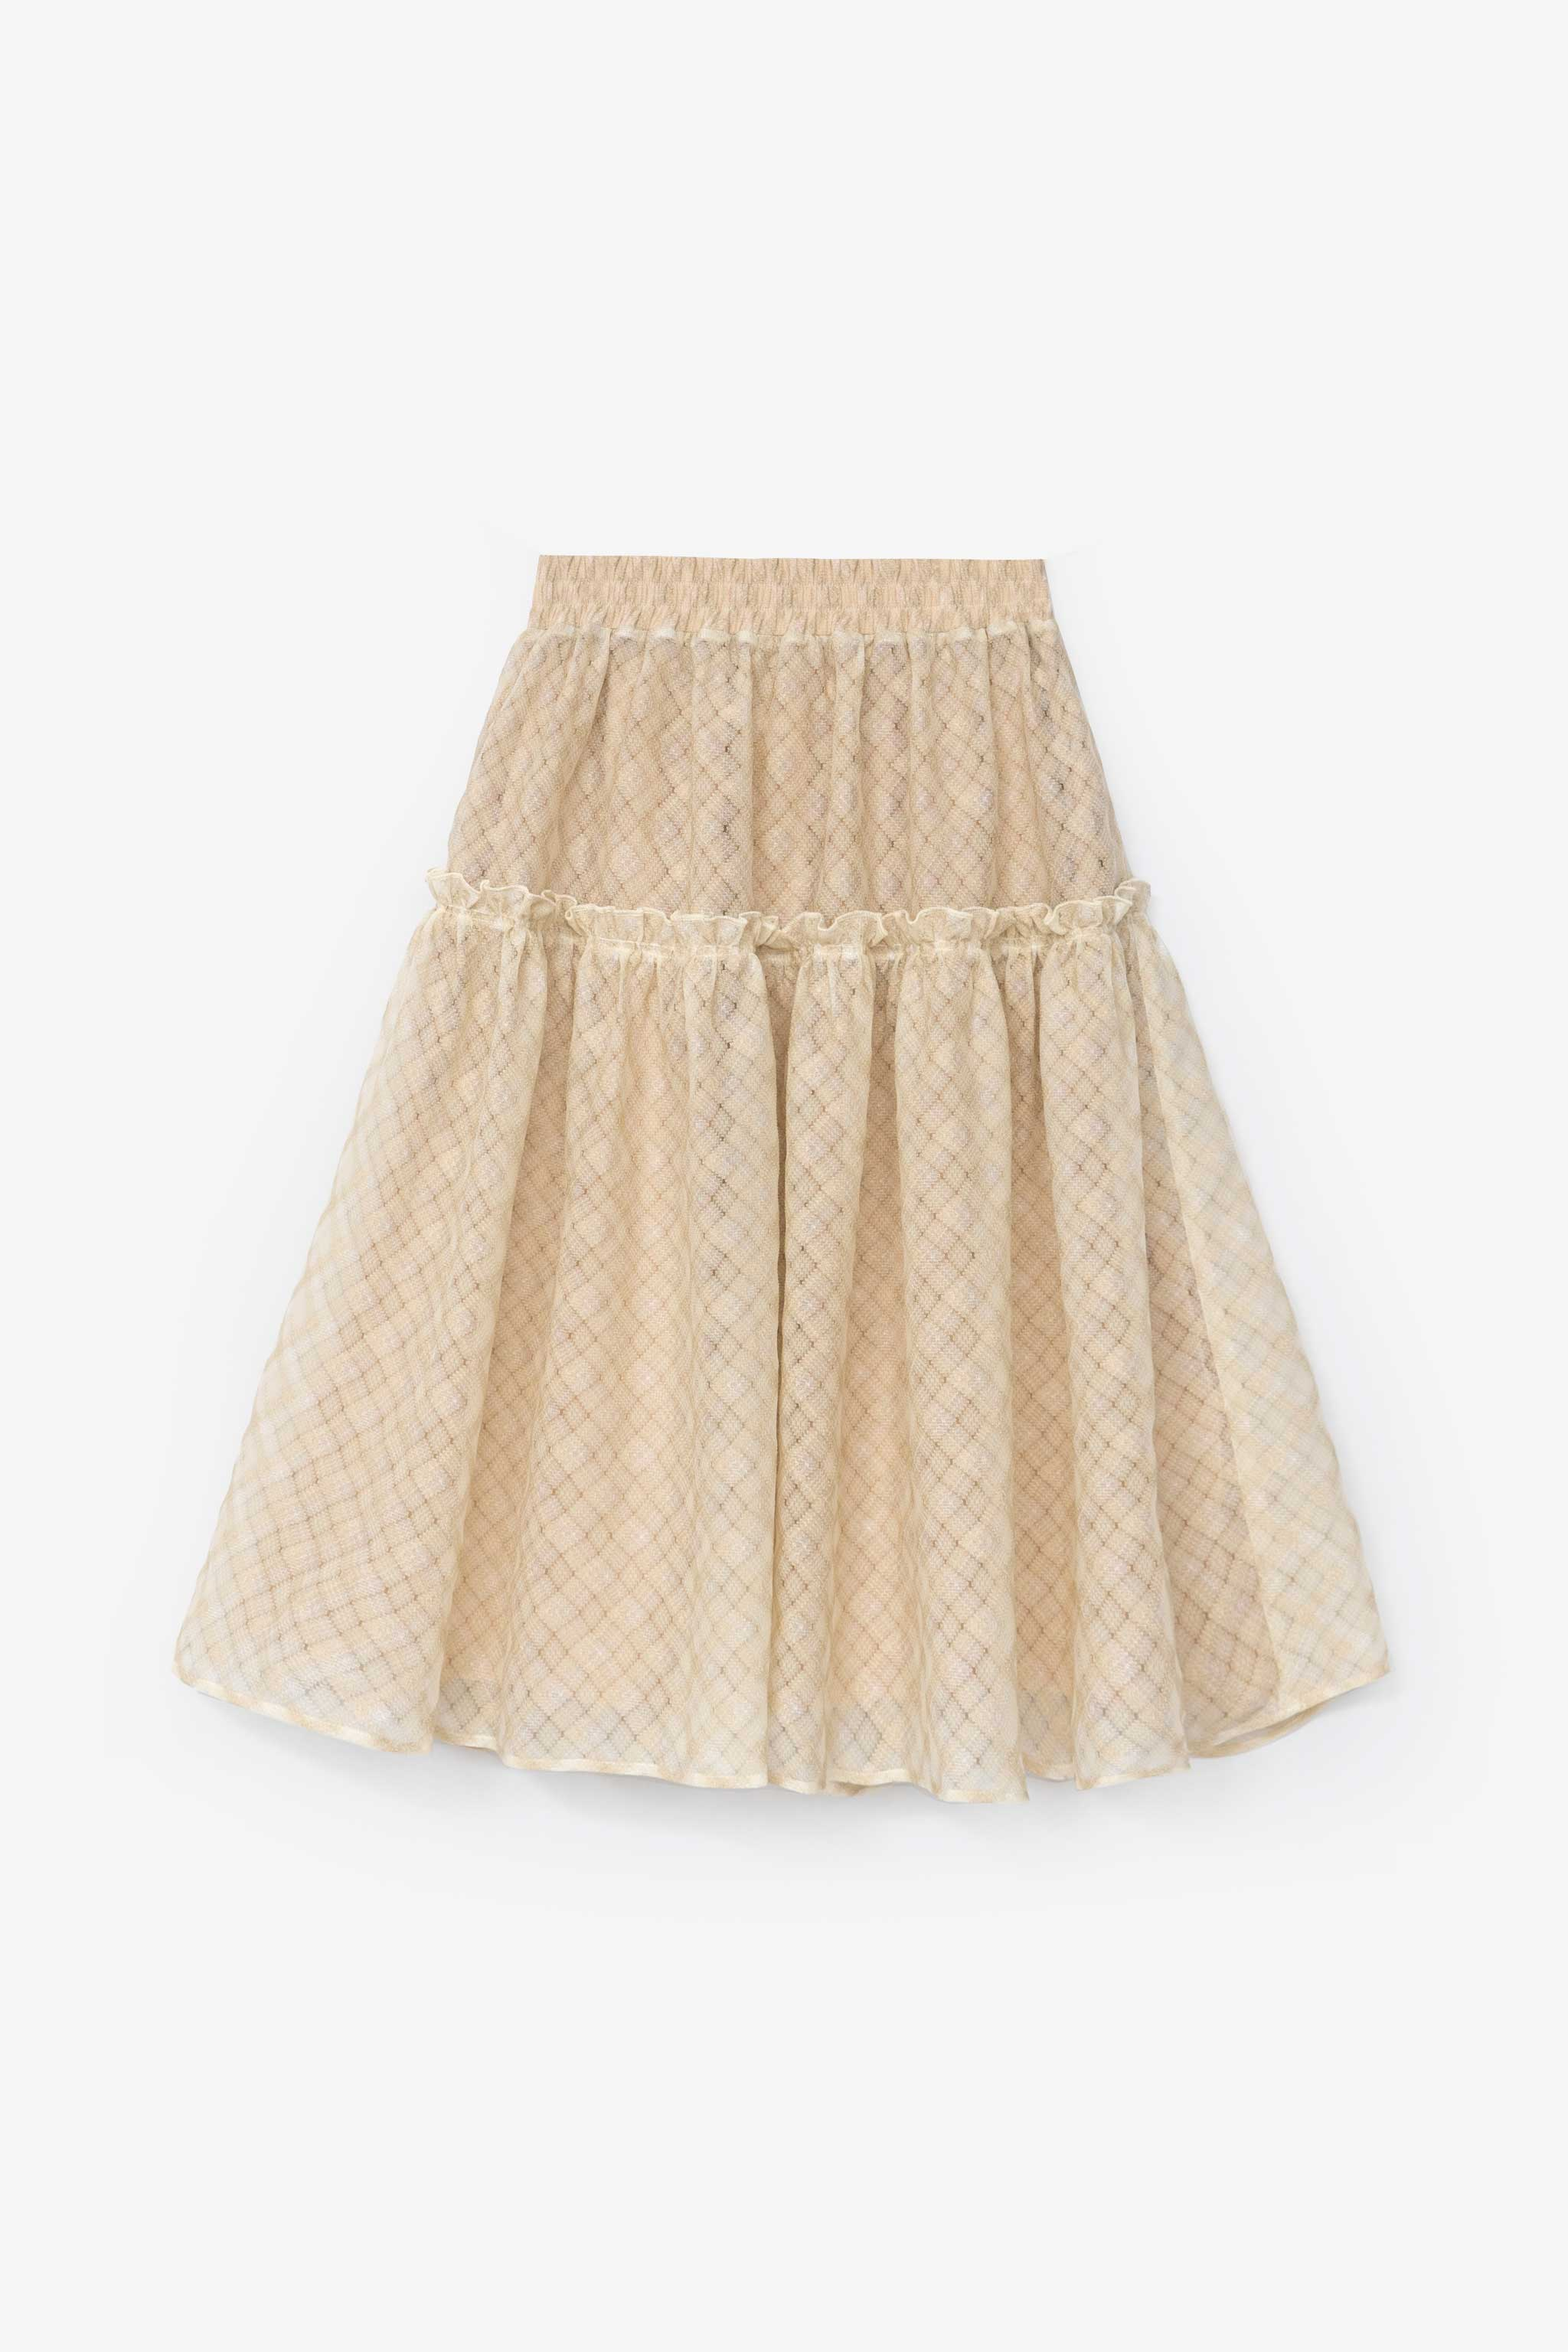 Wanda Skirt Salvage Program Cream